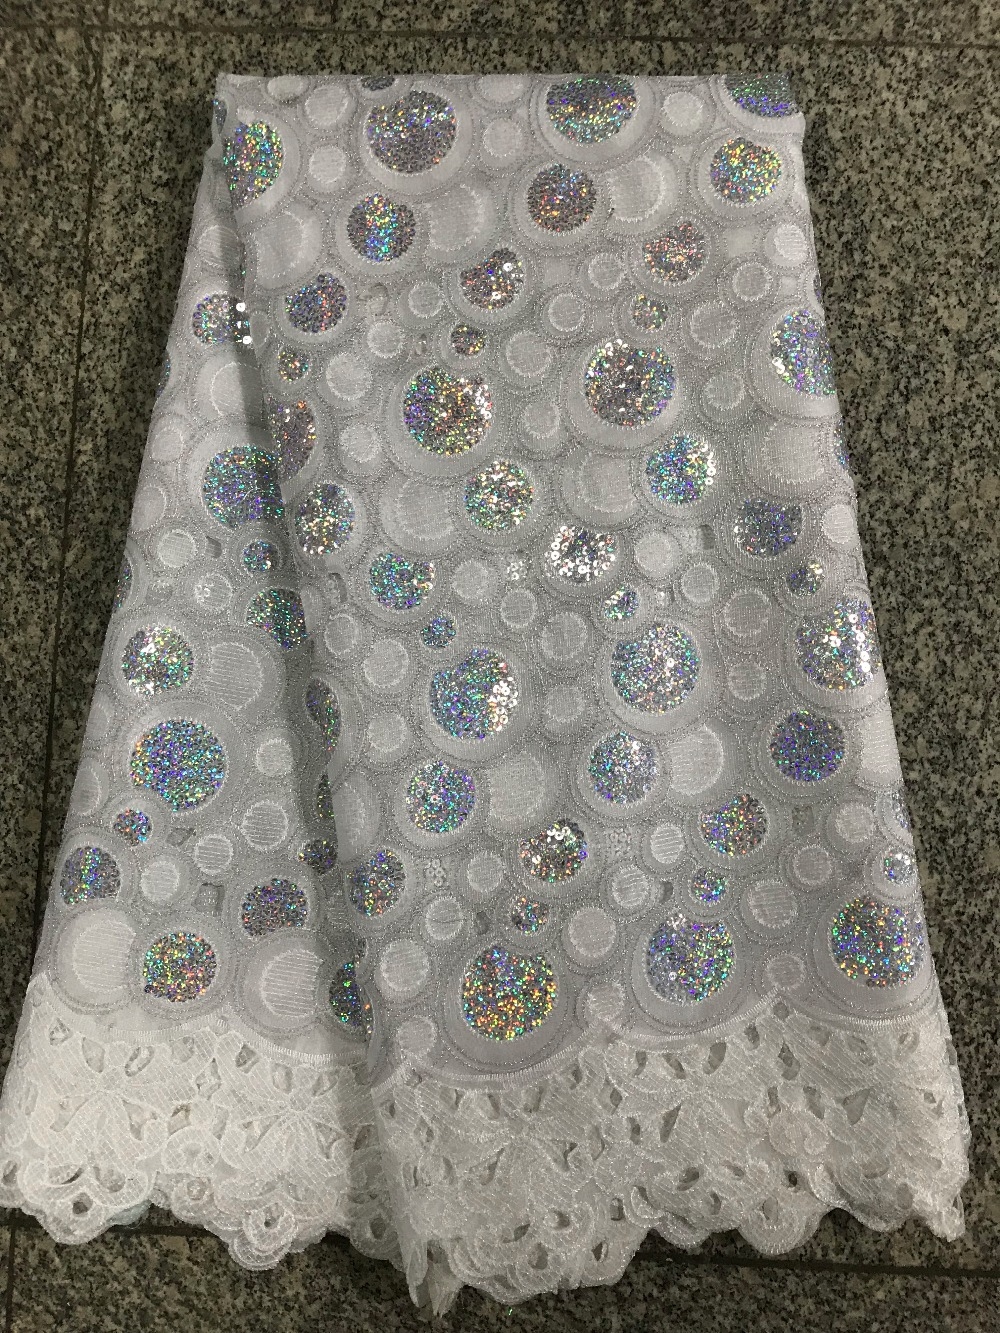 2018 New design embroidered sequins french lace fabric for party dress high quality Organza net lace fabric2018 New design embroidered sequins french lace fabric for party dress high quality Organza net lace fabric